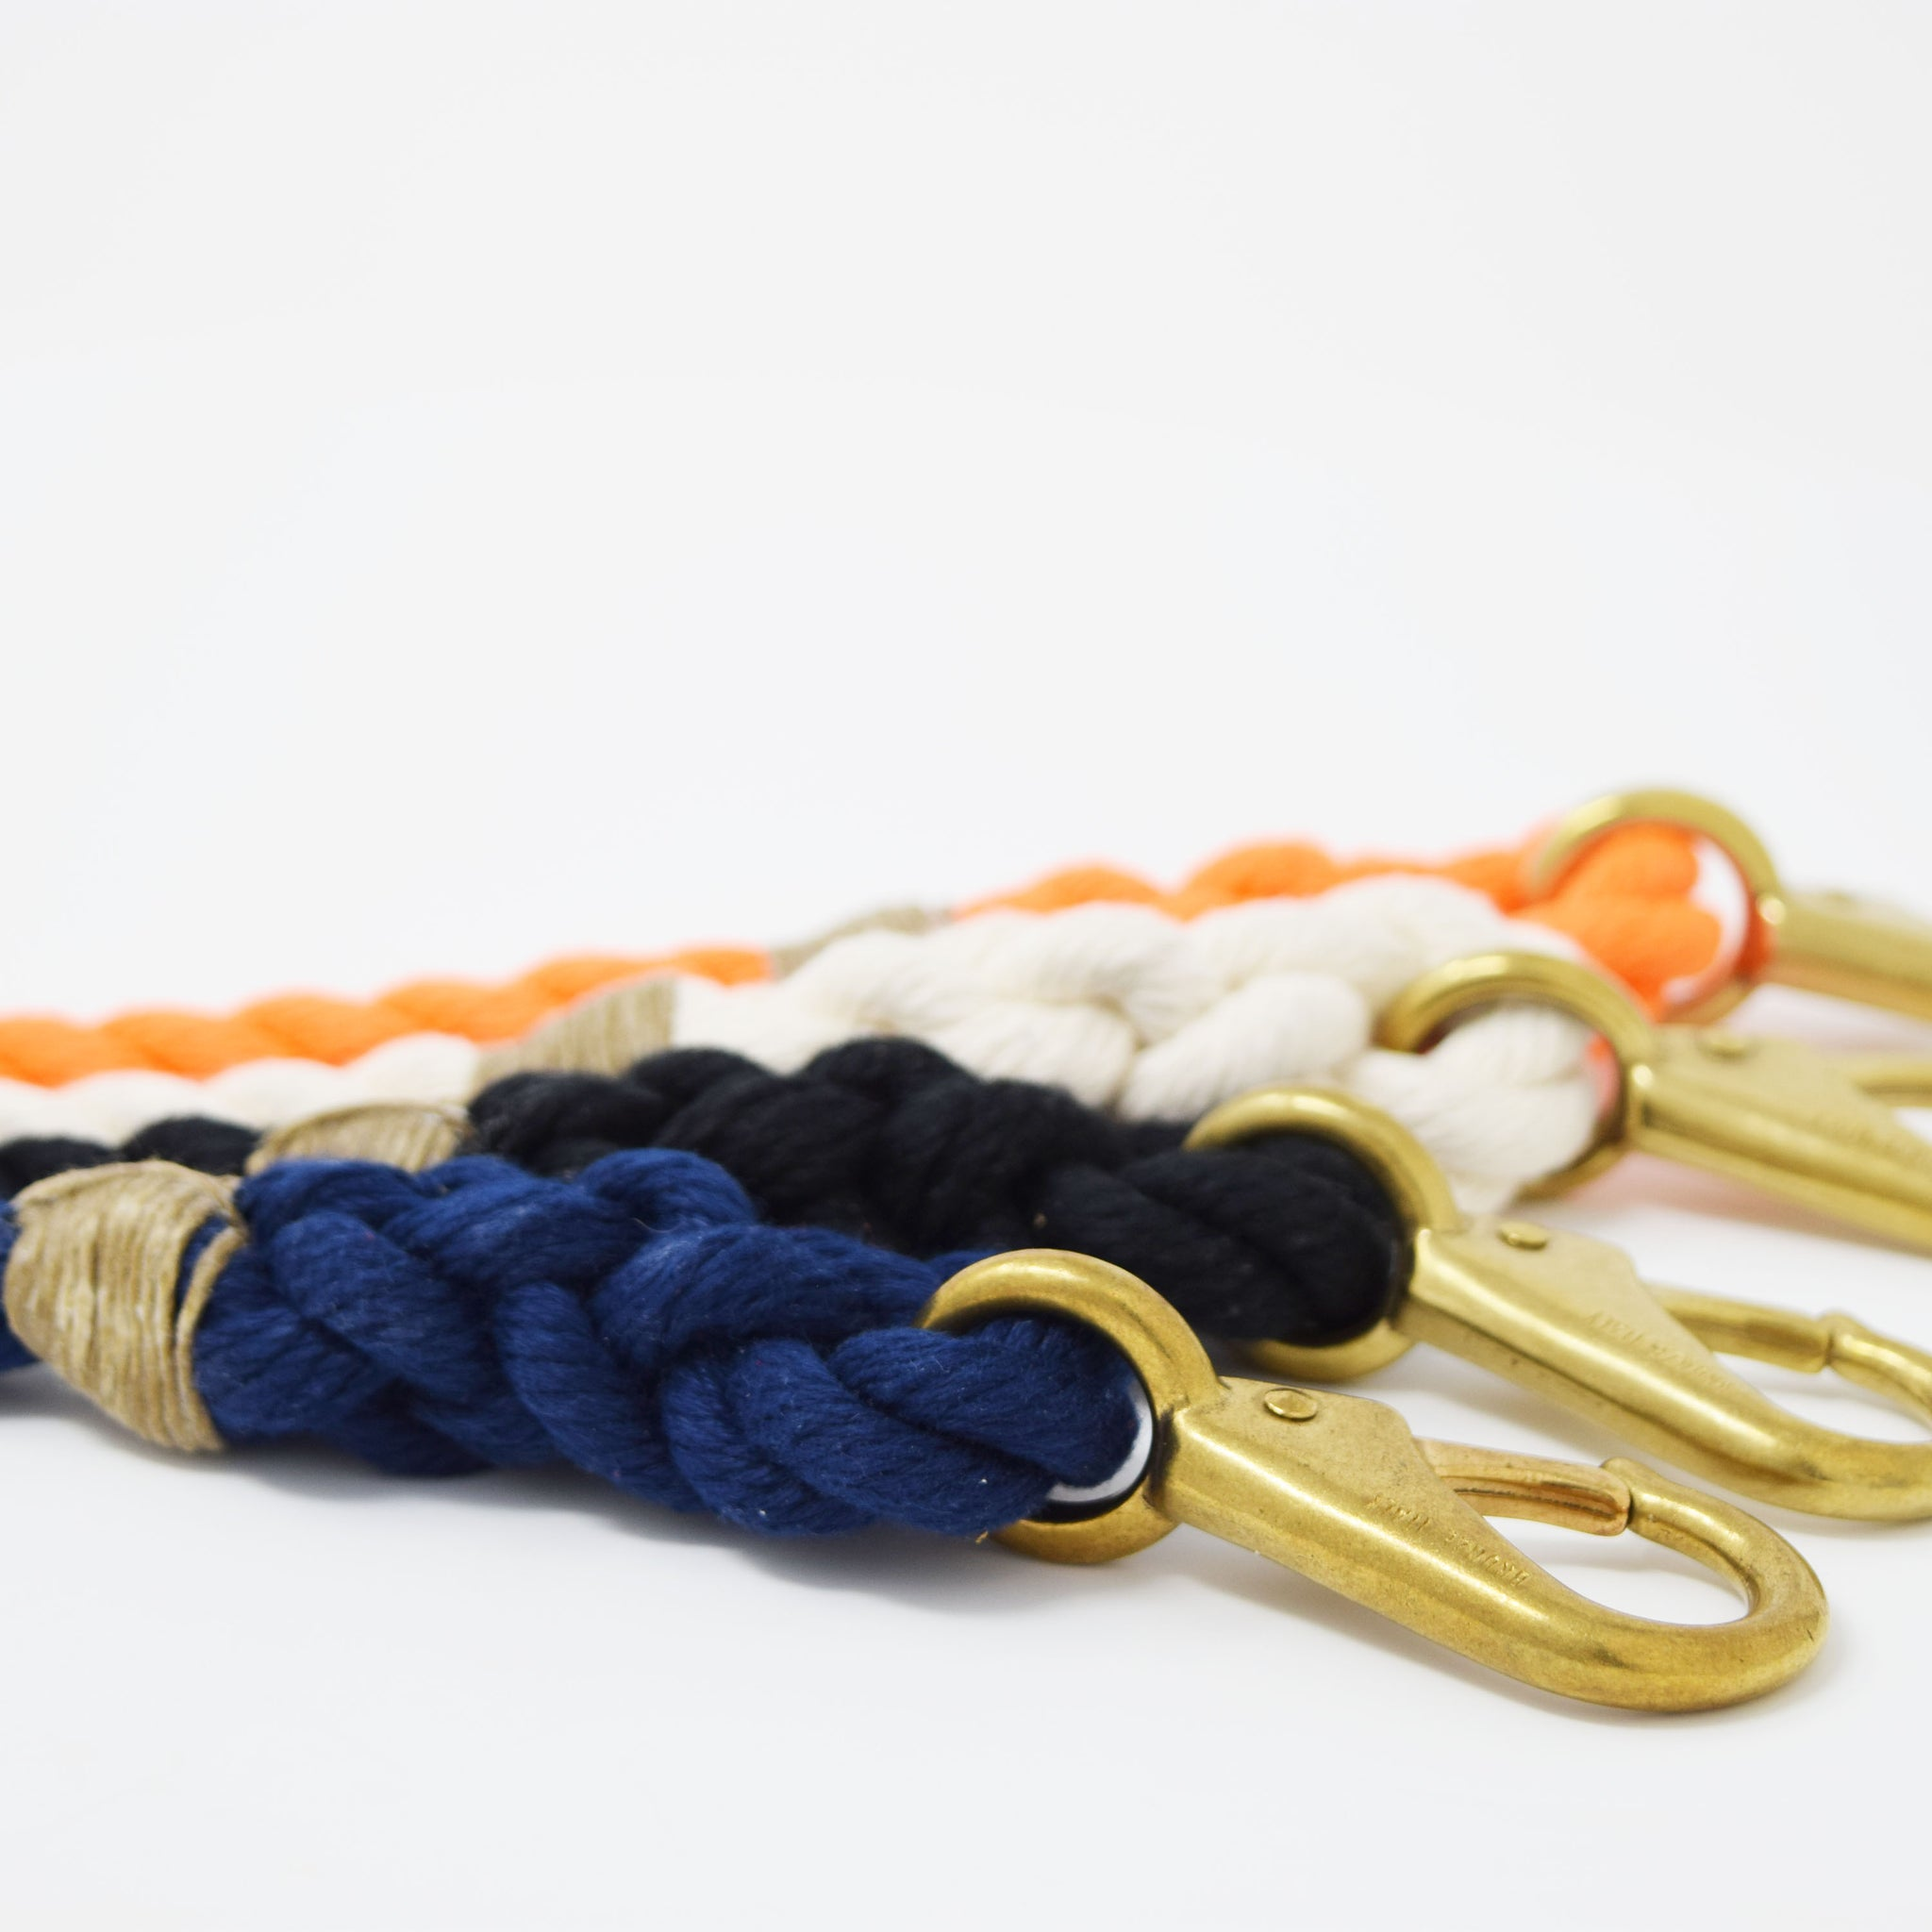 Fixed Length Dog Necklace Spun Polyester Rope with Italian Bronze Snap Mariner Series Black Rope Dog Collar